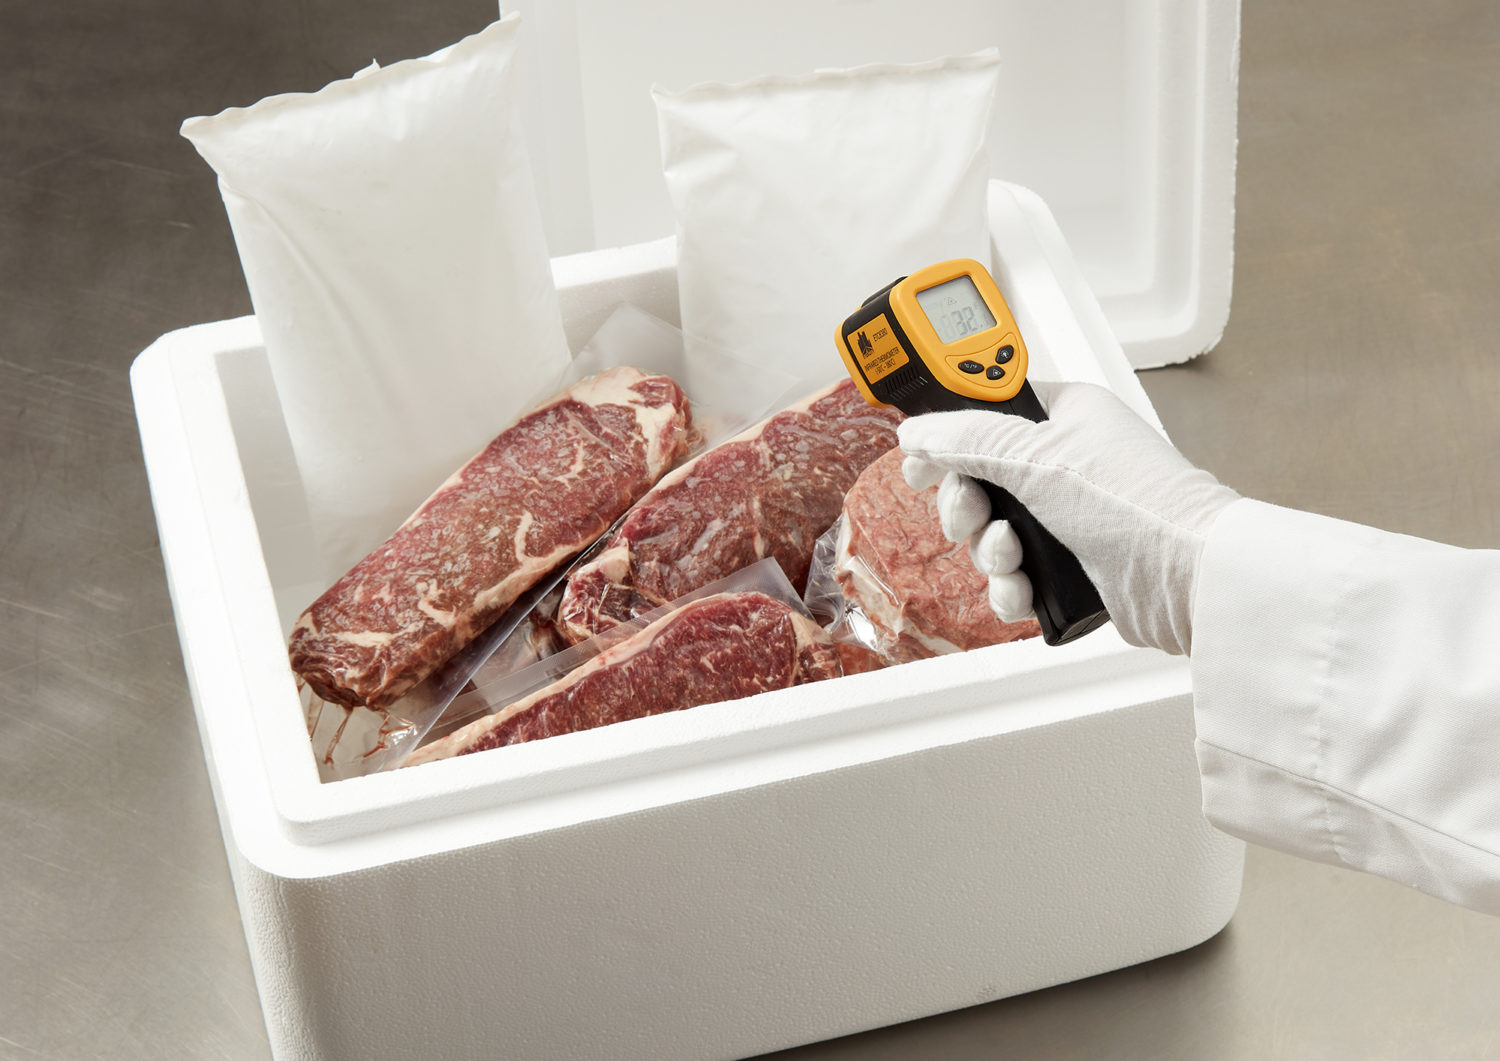 CuraTemp - Freezer Packs for Temperature Accuracy